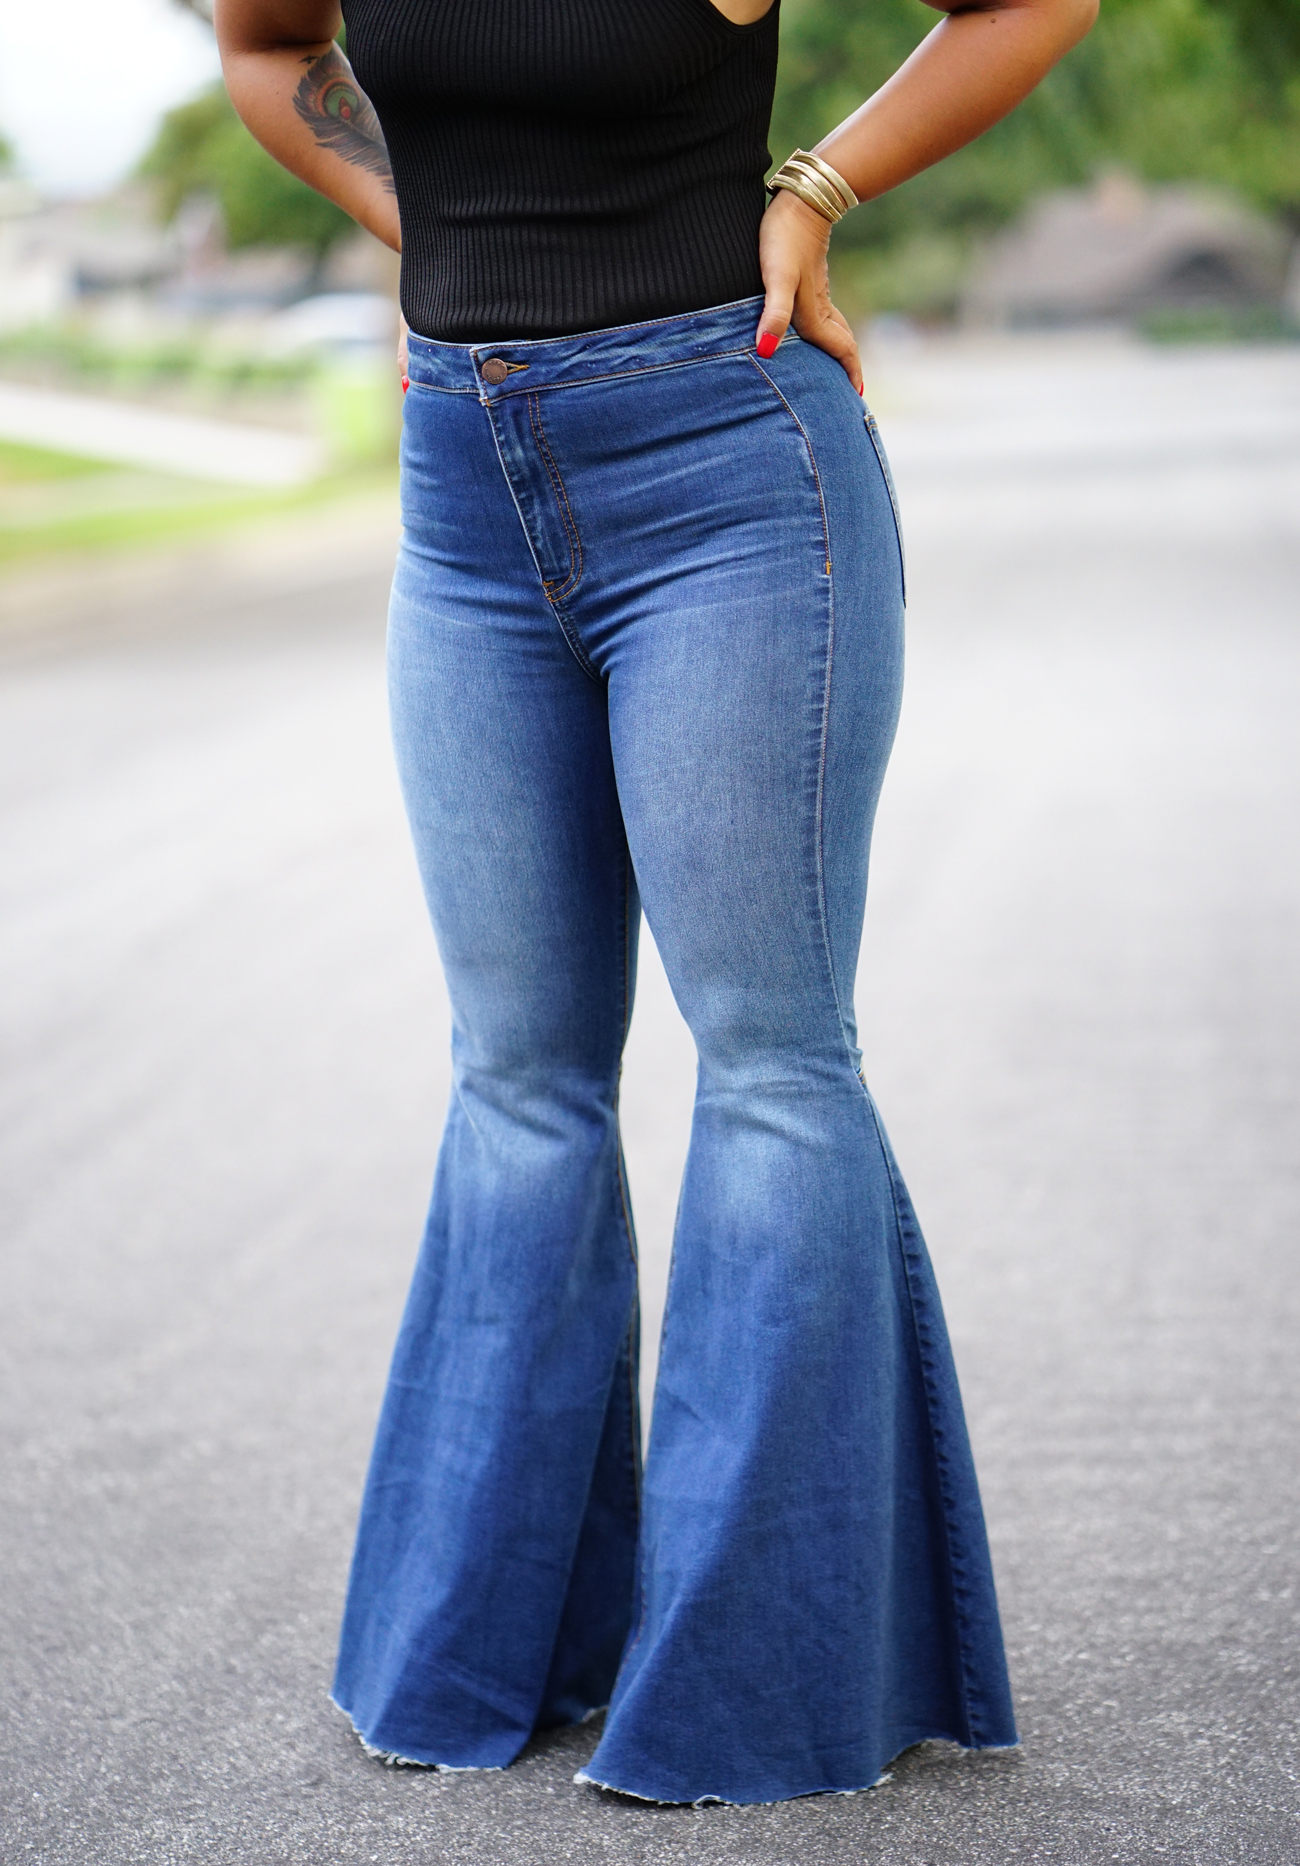 Flared Jeans And Tie Top Mimi G Style